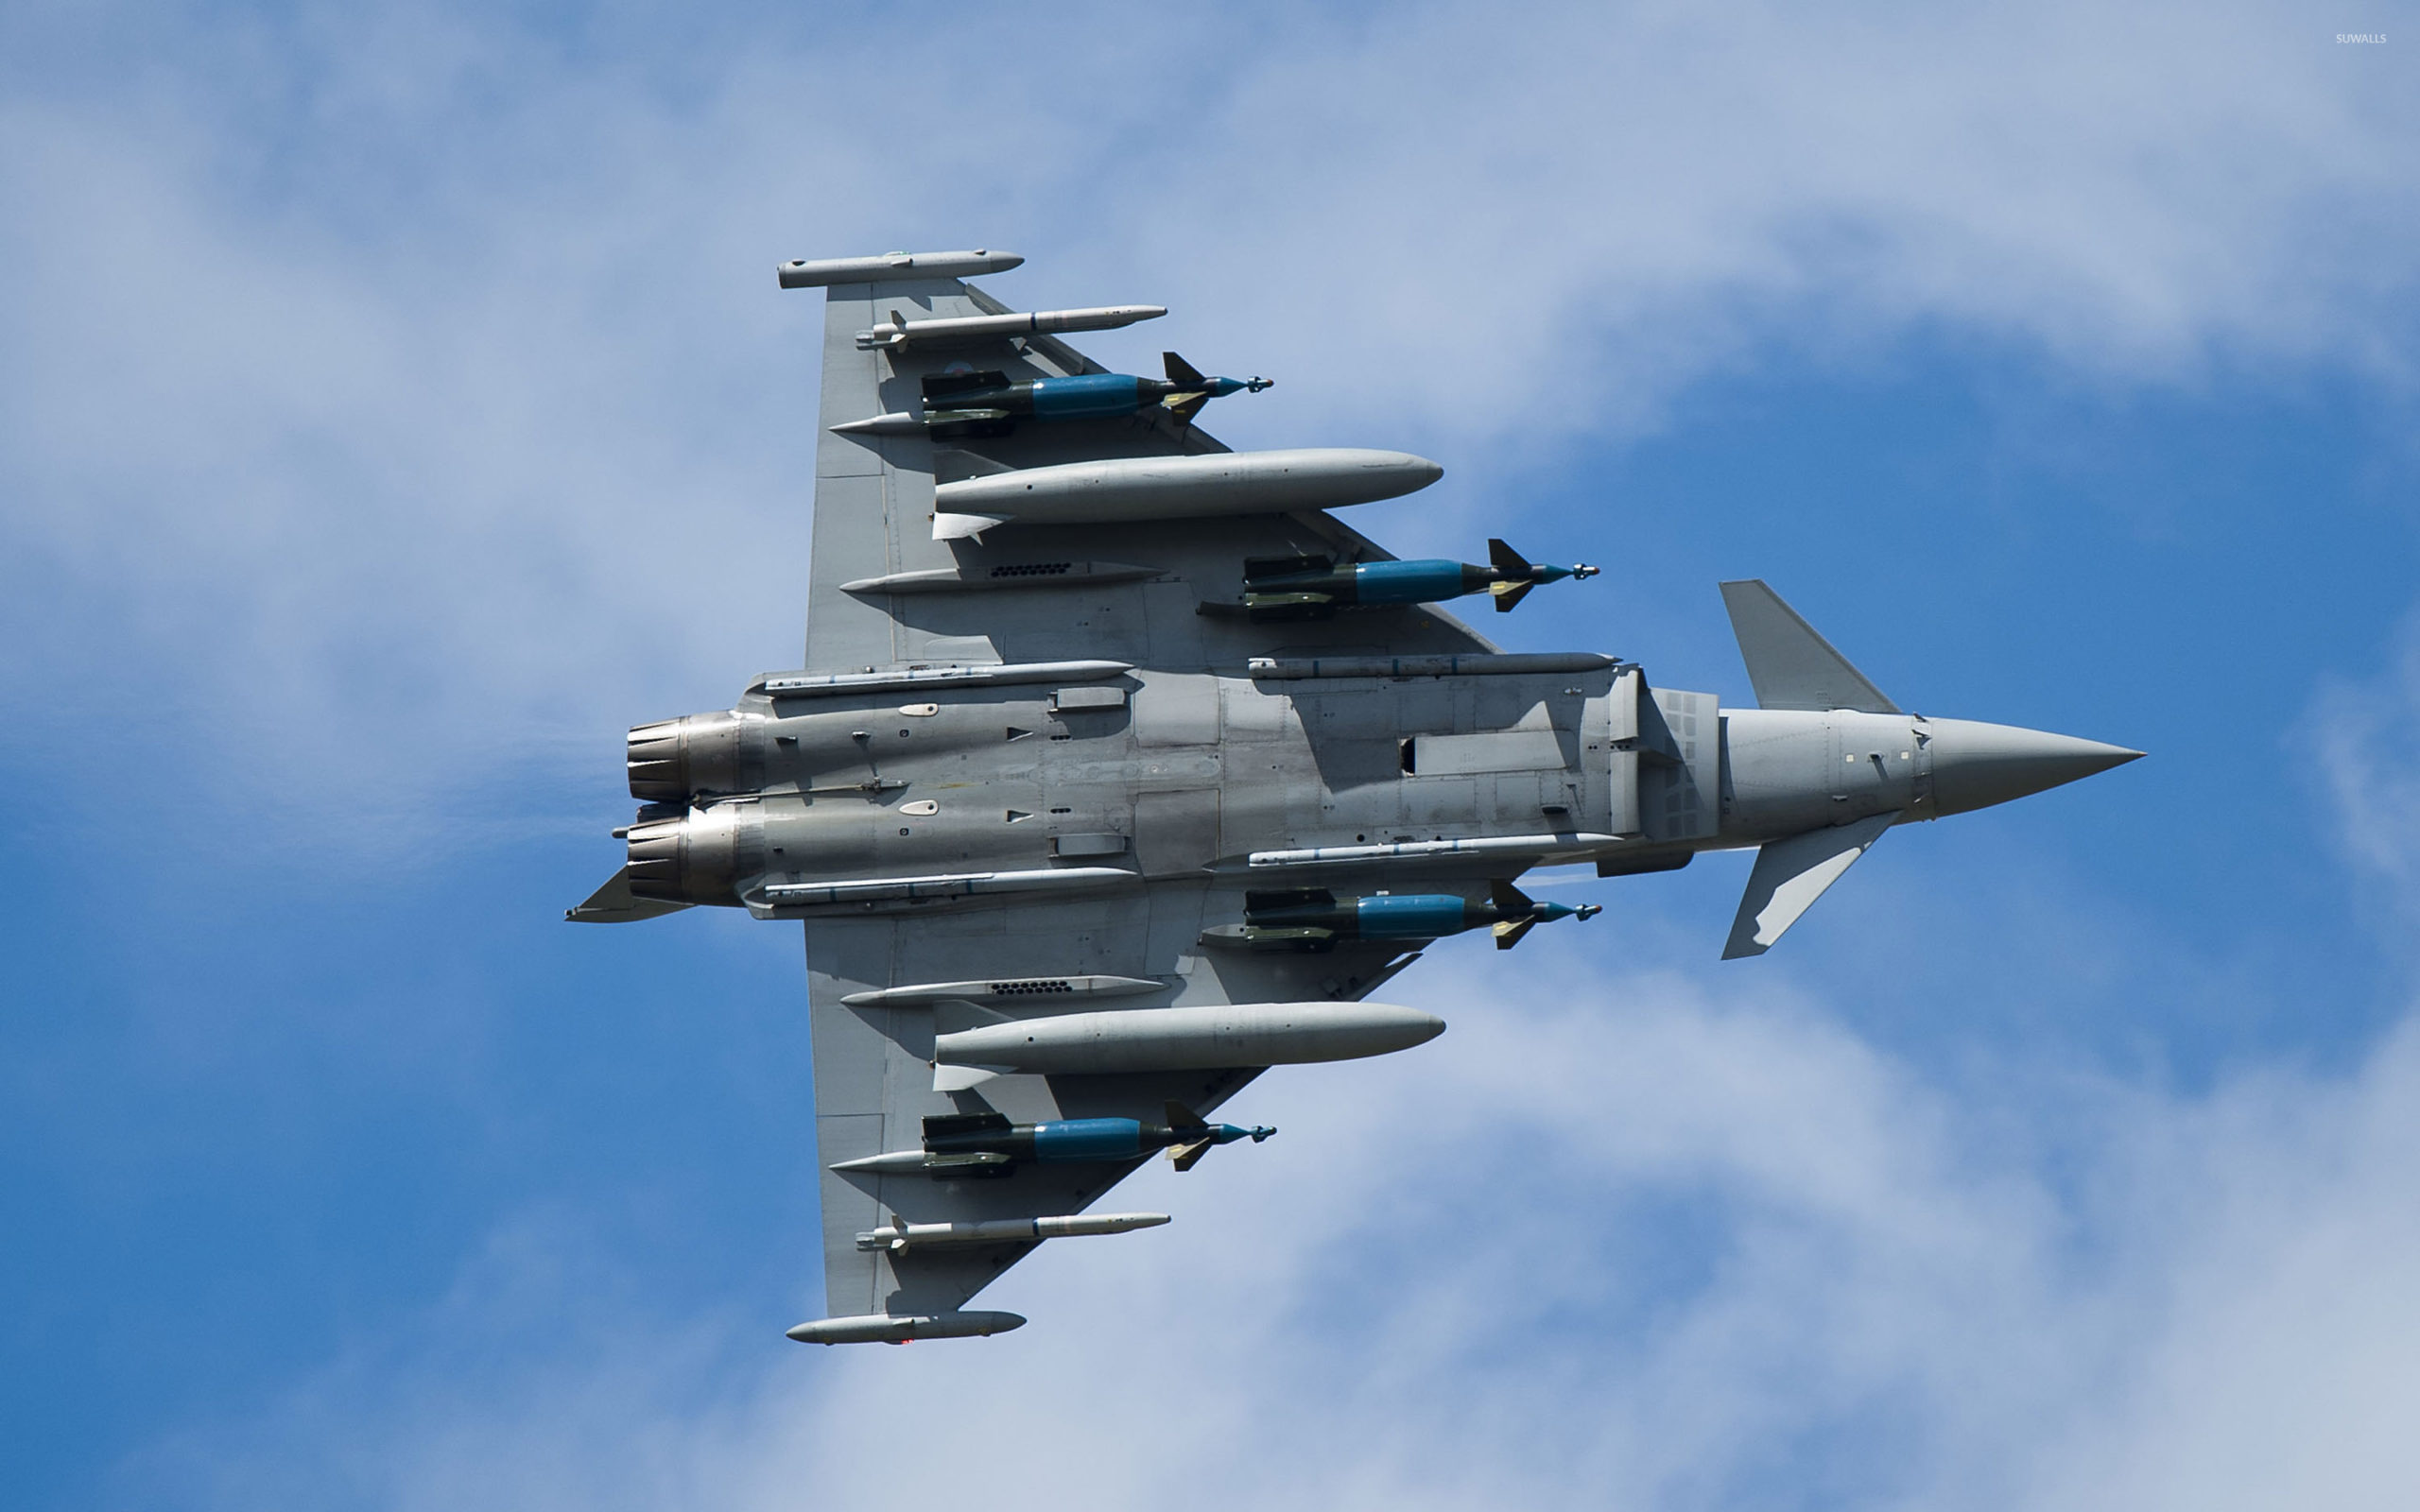 BAE Systems Test pilot Mark Bowman flies Eurofighter Typhoon with a full war load. 4xAMRAAM, 2ASRAAM, 2 1000Litre drop tanks and 4 LGB Bombs at RAF Fairford.